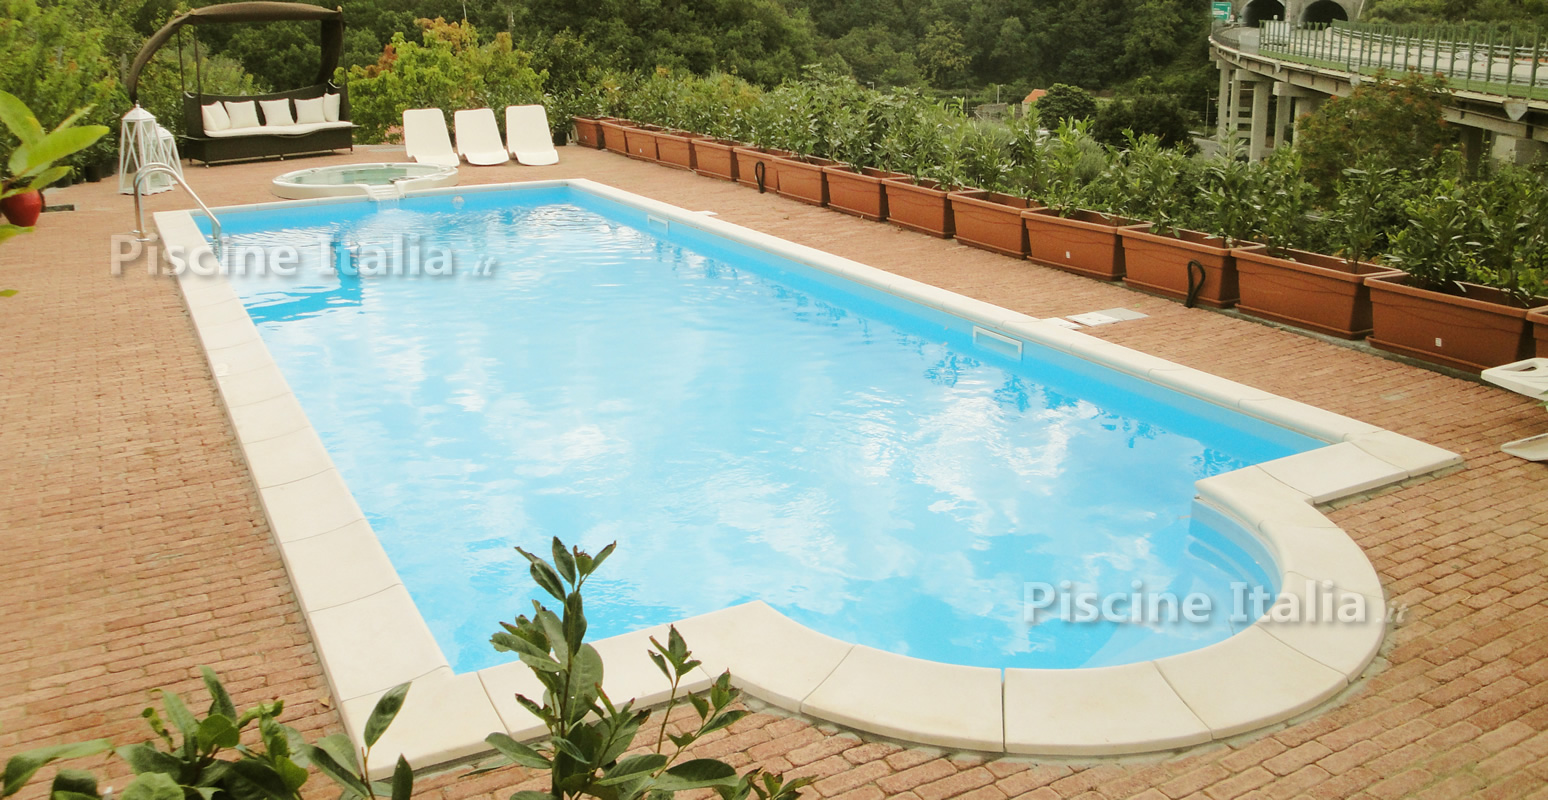 Piscine interrate in kit Futura - Immagine 5